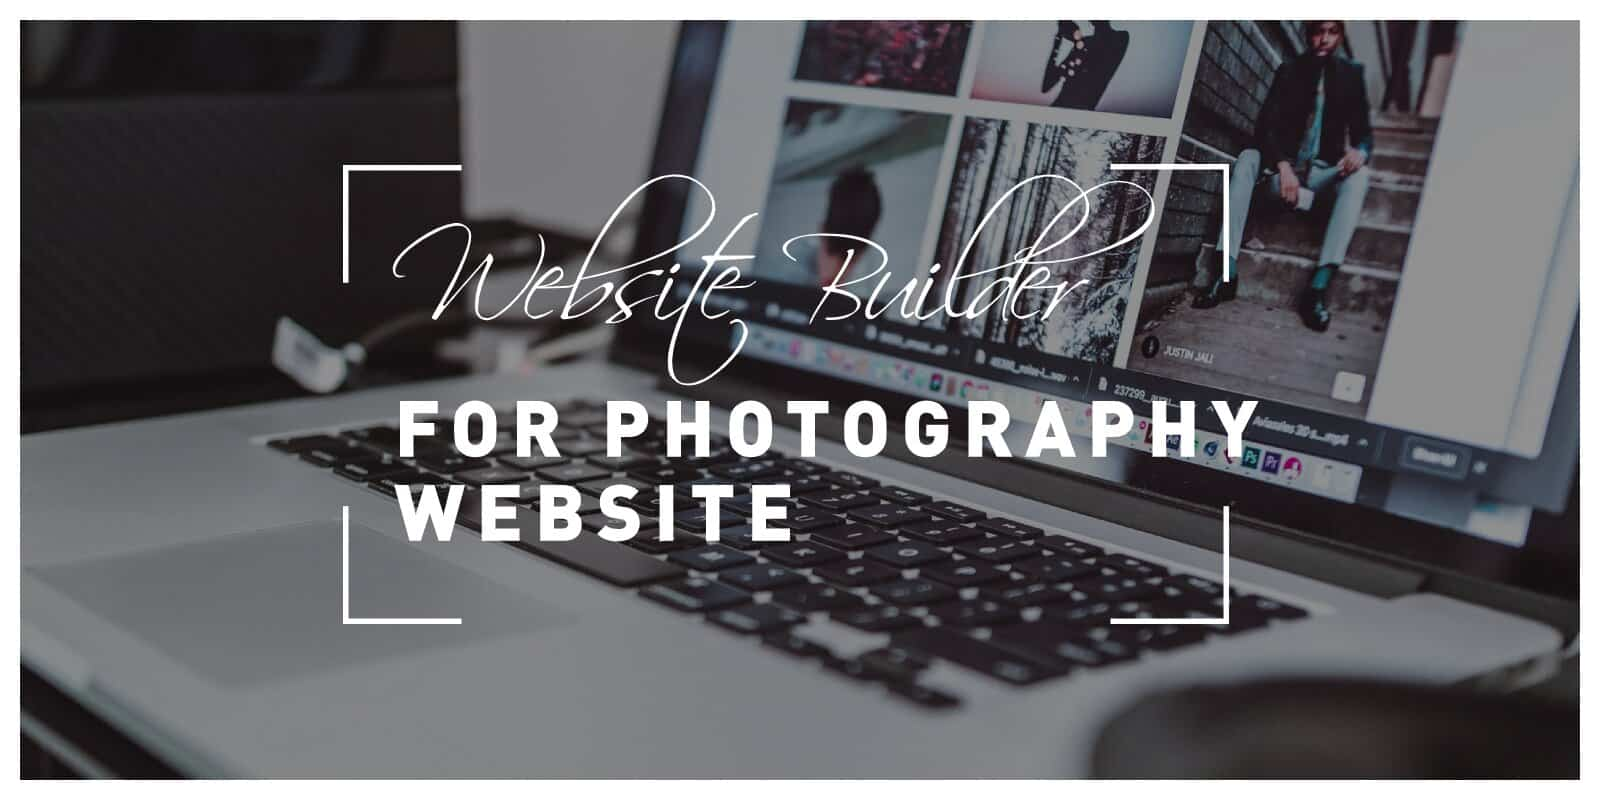 Choosing the Best Website Builder for Your Photography Website